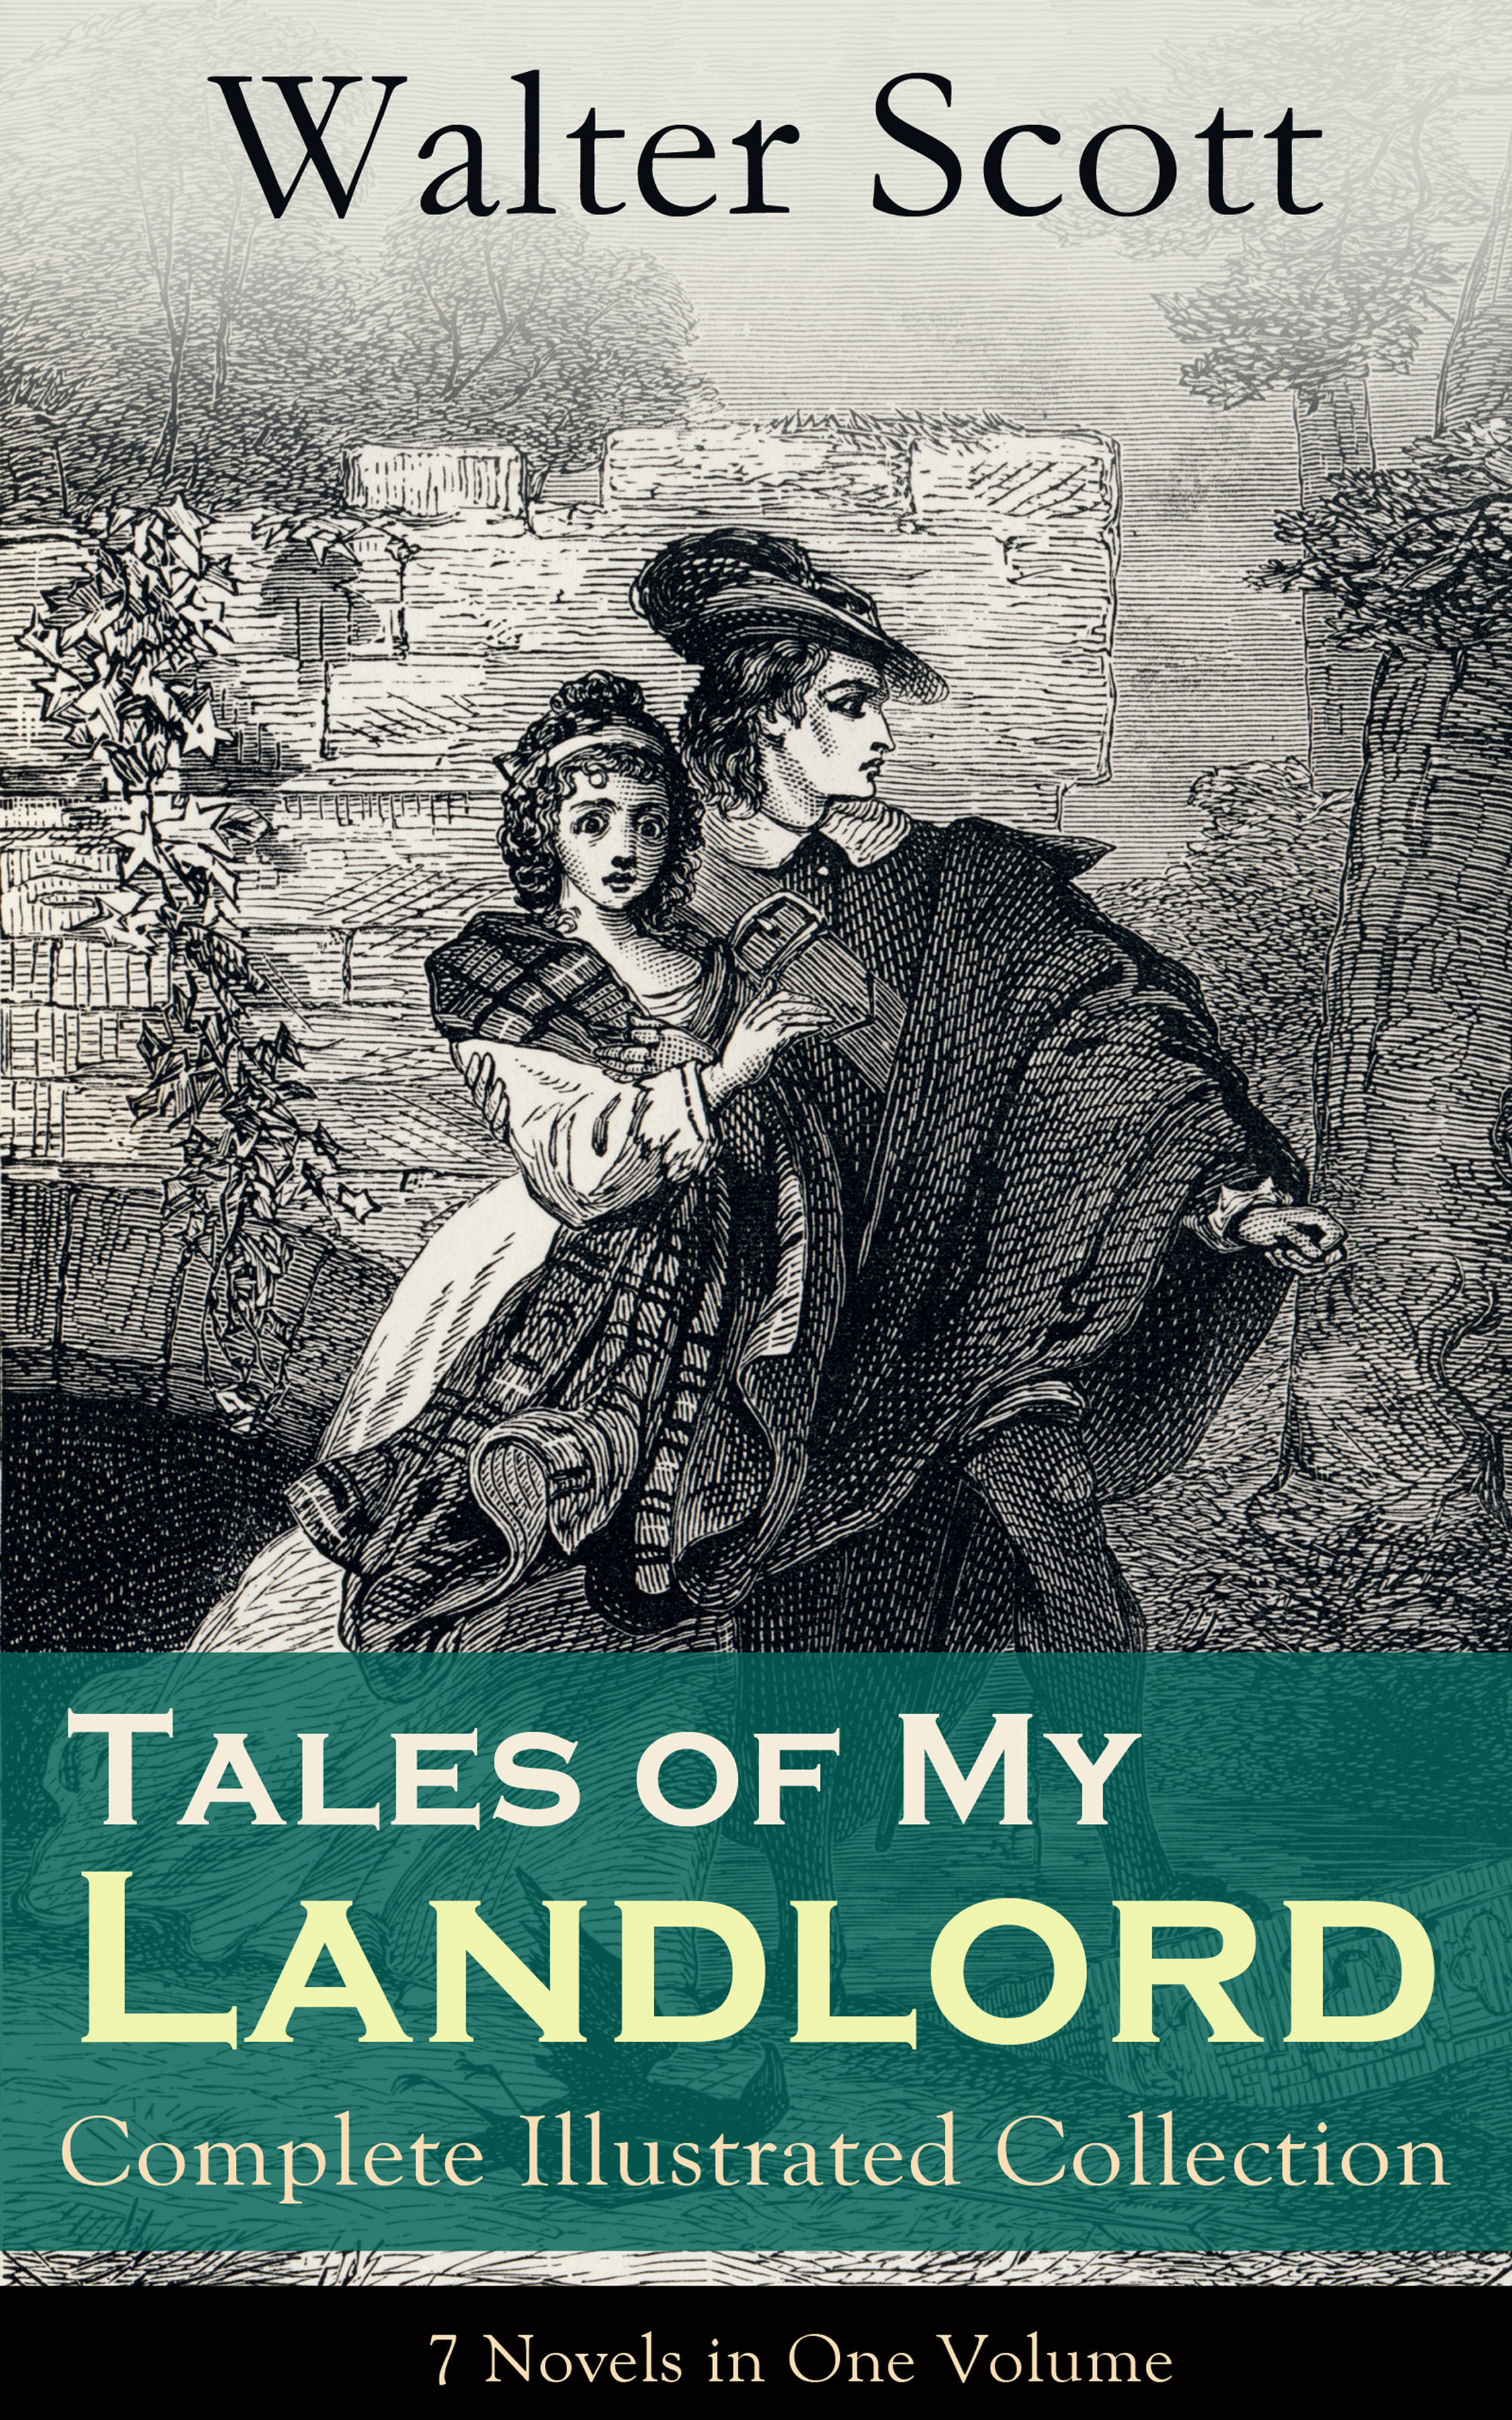 Walter Scott Tales of My Landlord - Complete Illustrated Collection: 7 Novels in One Volume: Old Mortality, Black Dwarf, The Heart of Midlothian, The Bride of Lammermoor, A Legend of Montrose, Count Robert of Paris and Castle Dangerous walter scott tales of my landlord the stories from the scottish highlands illustrated edition